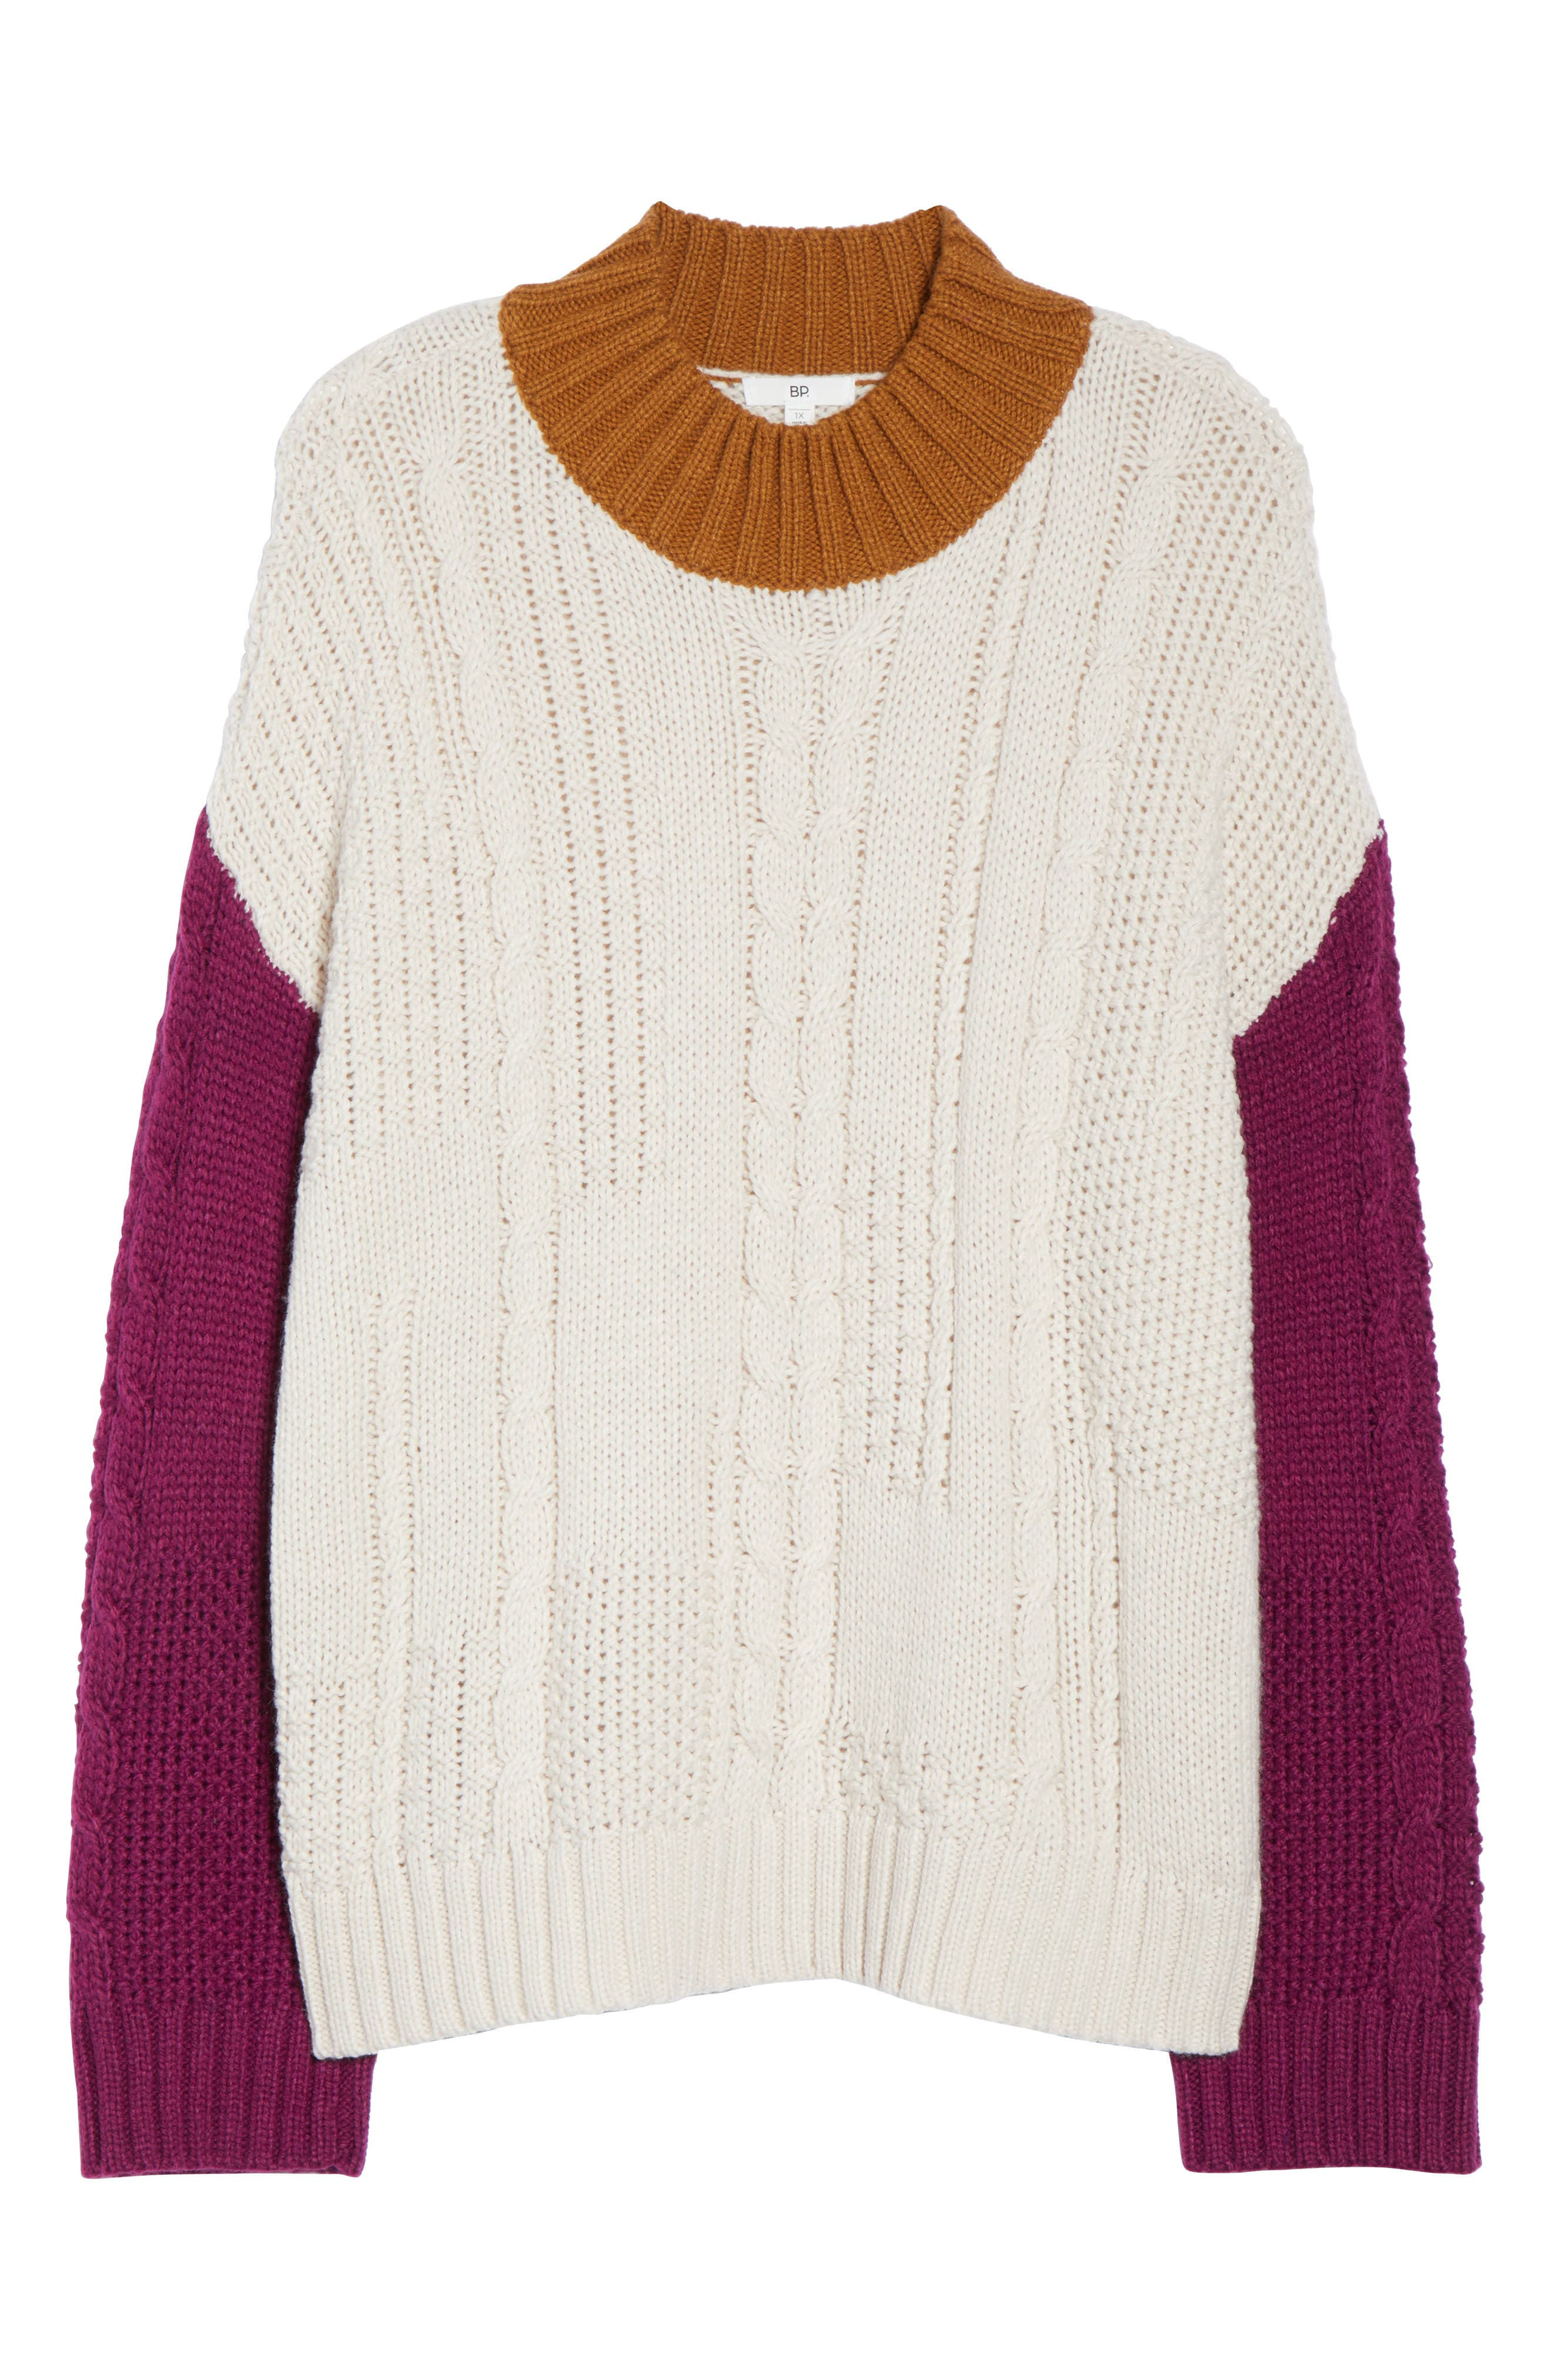 Colorblock Cable Knit Pullover,                             Alternate thumbnail 11, color,                             270